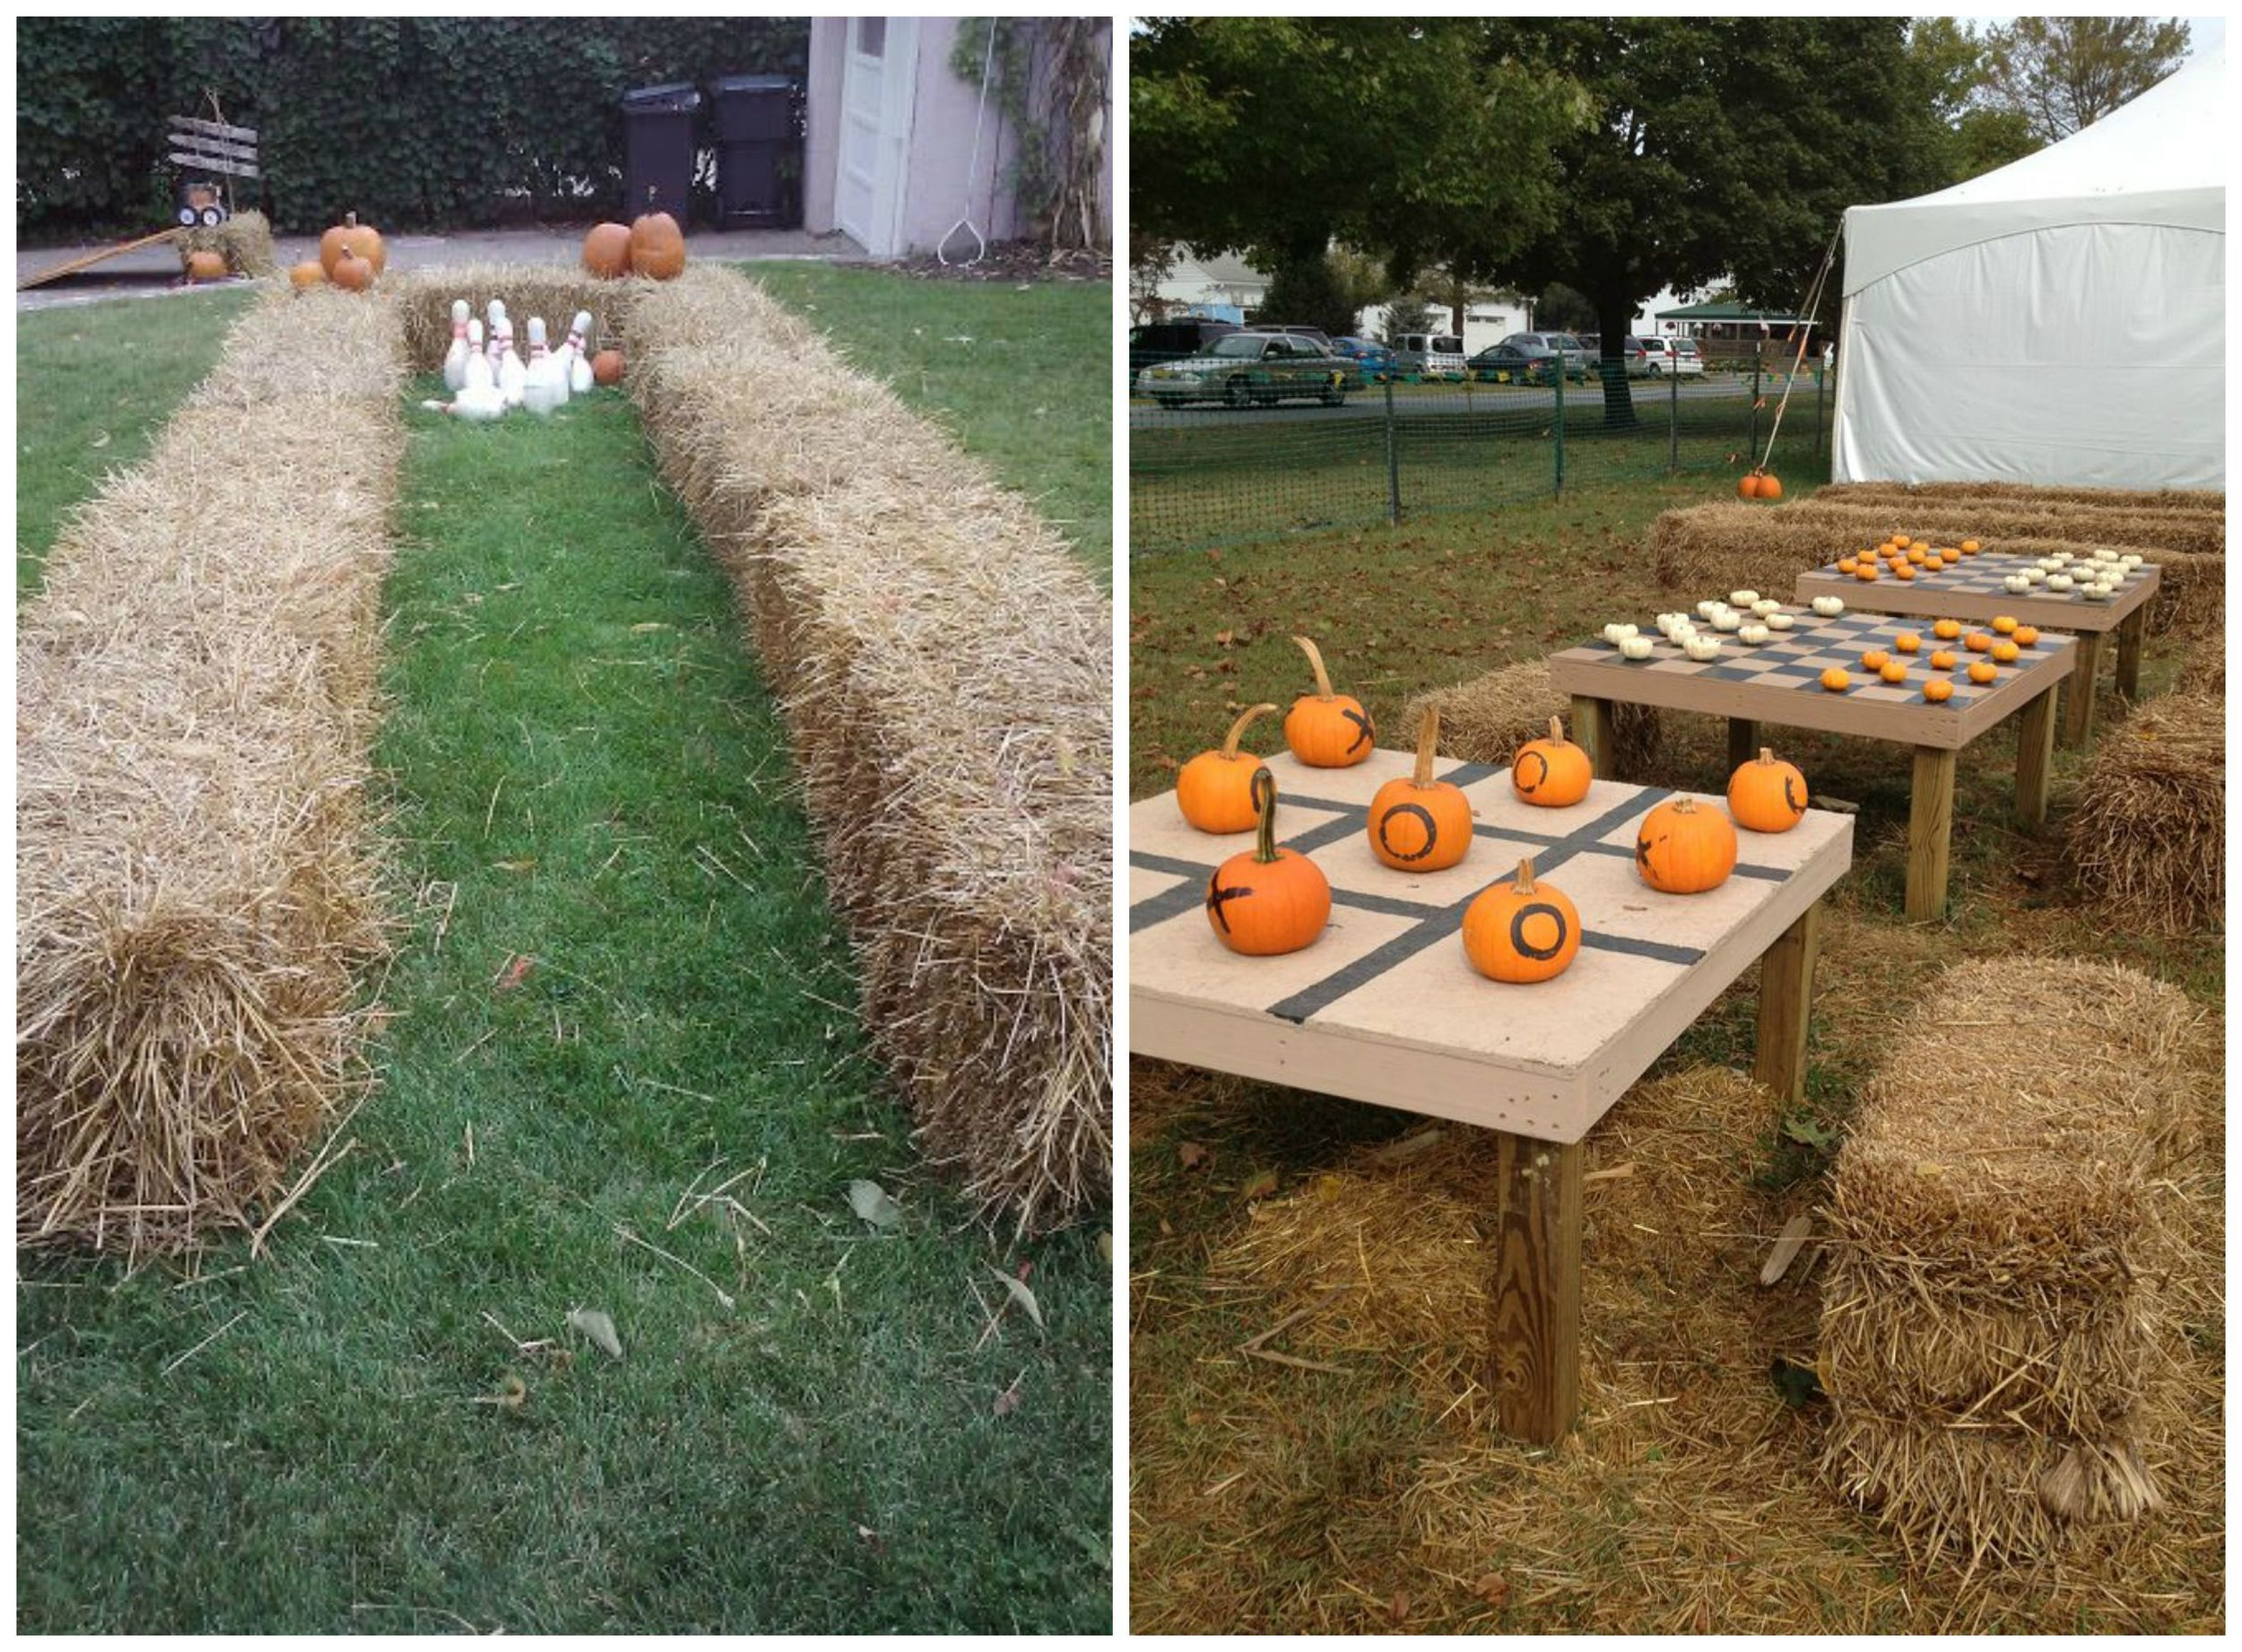 Pinterest ;  Pinterest . Lawn games are always a hit, and if you can figure out a way to involve pumpkins, it'll be even more fun! Ideas I love: pumpkin bowling, pumpkin tic-tac-toe, and pumpkin checkers.